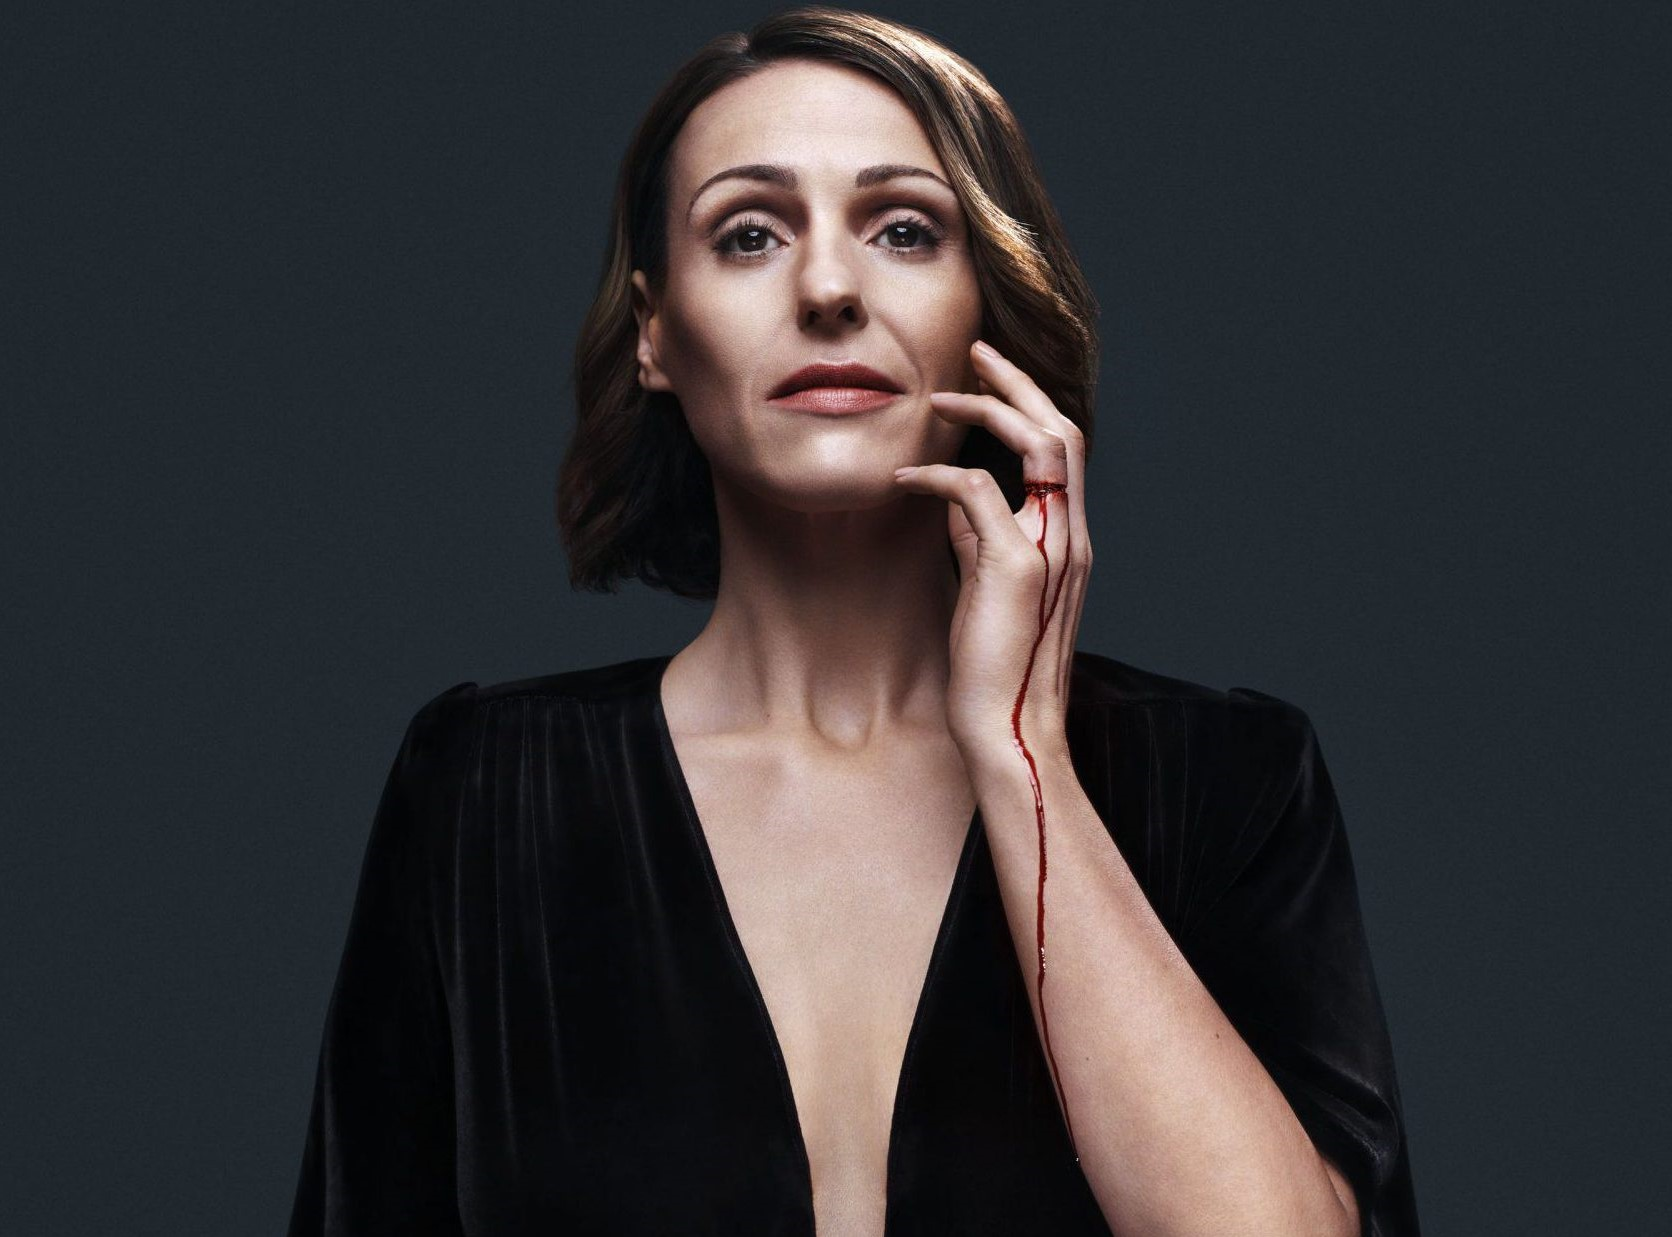 DOCTOR FOSTER 1 & 2